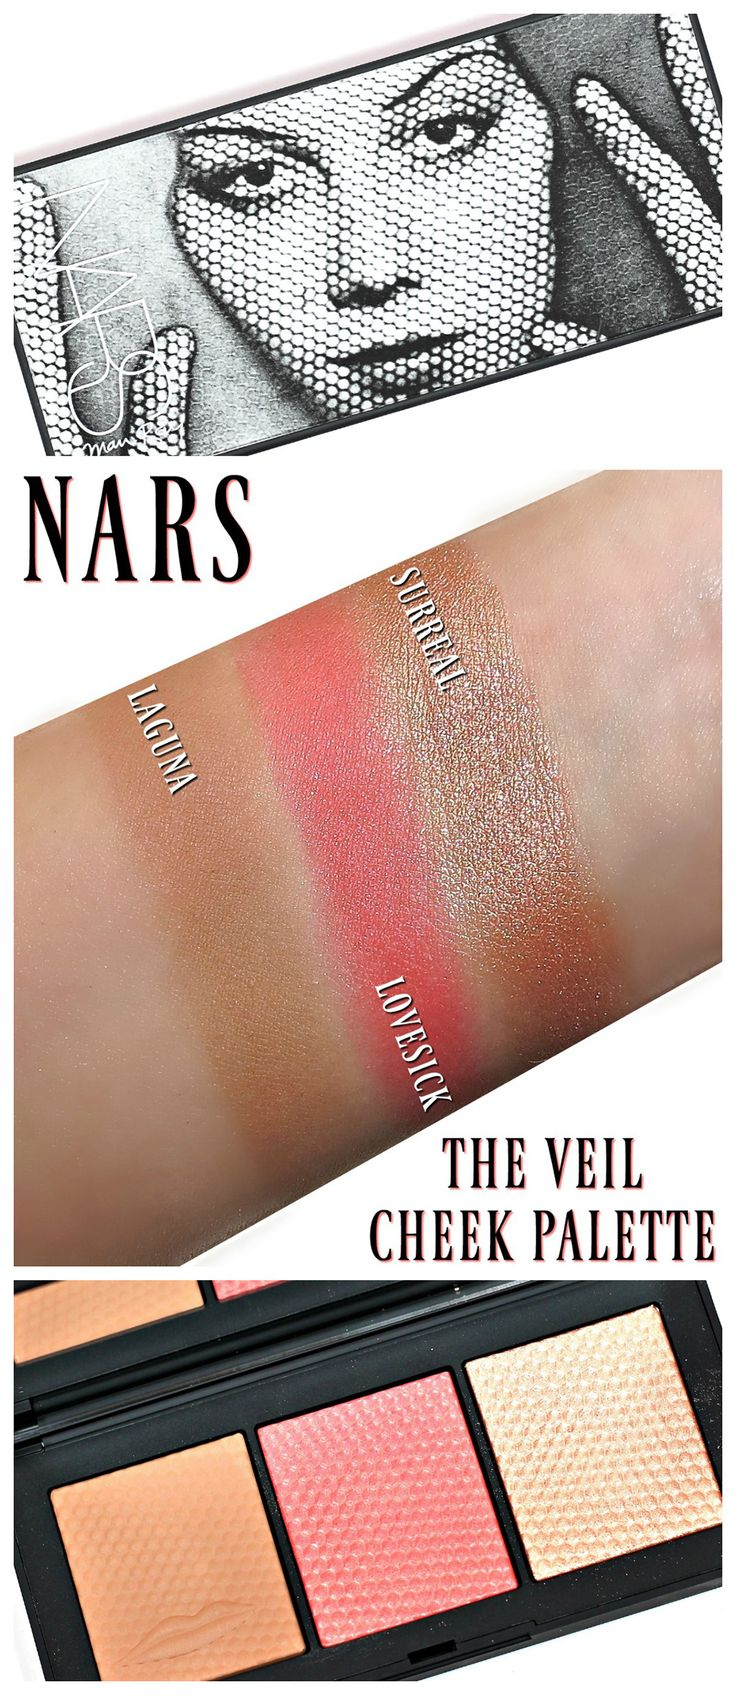 Nars Man Ray Veil Cheek Palette Swatches Review Holiday 2017 Cheek Palette Man Ray Contouring And Highlighting